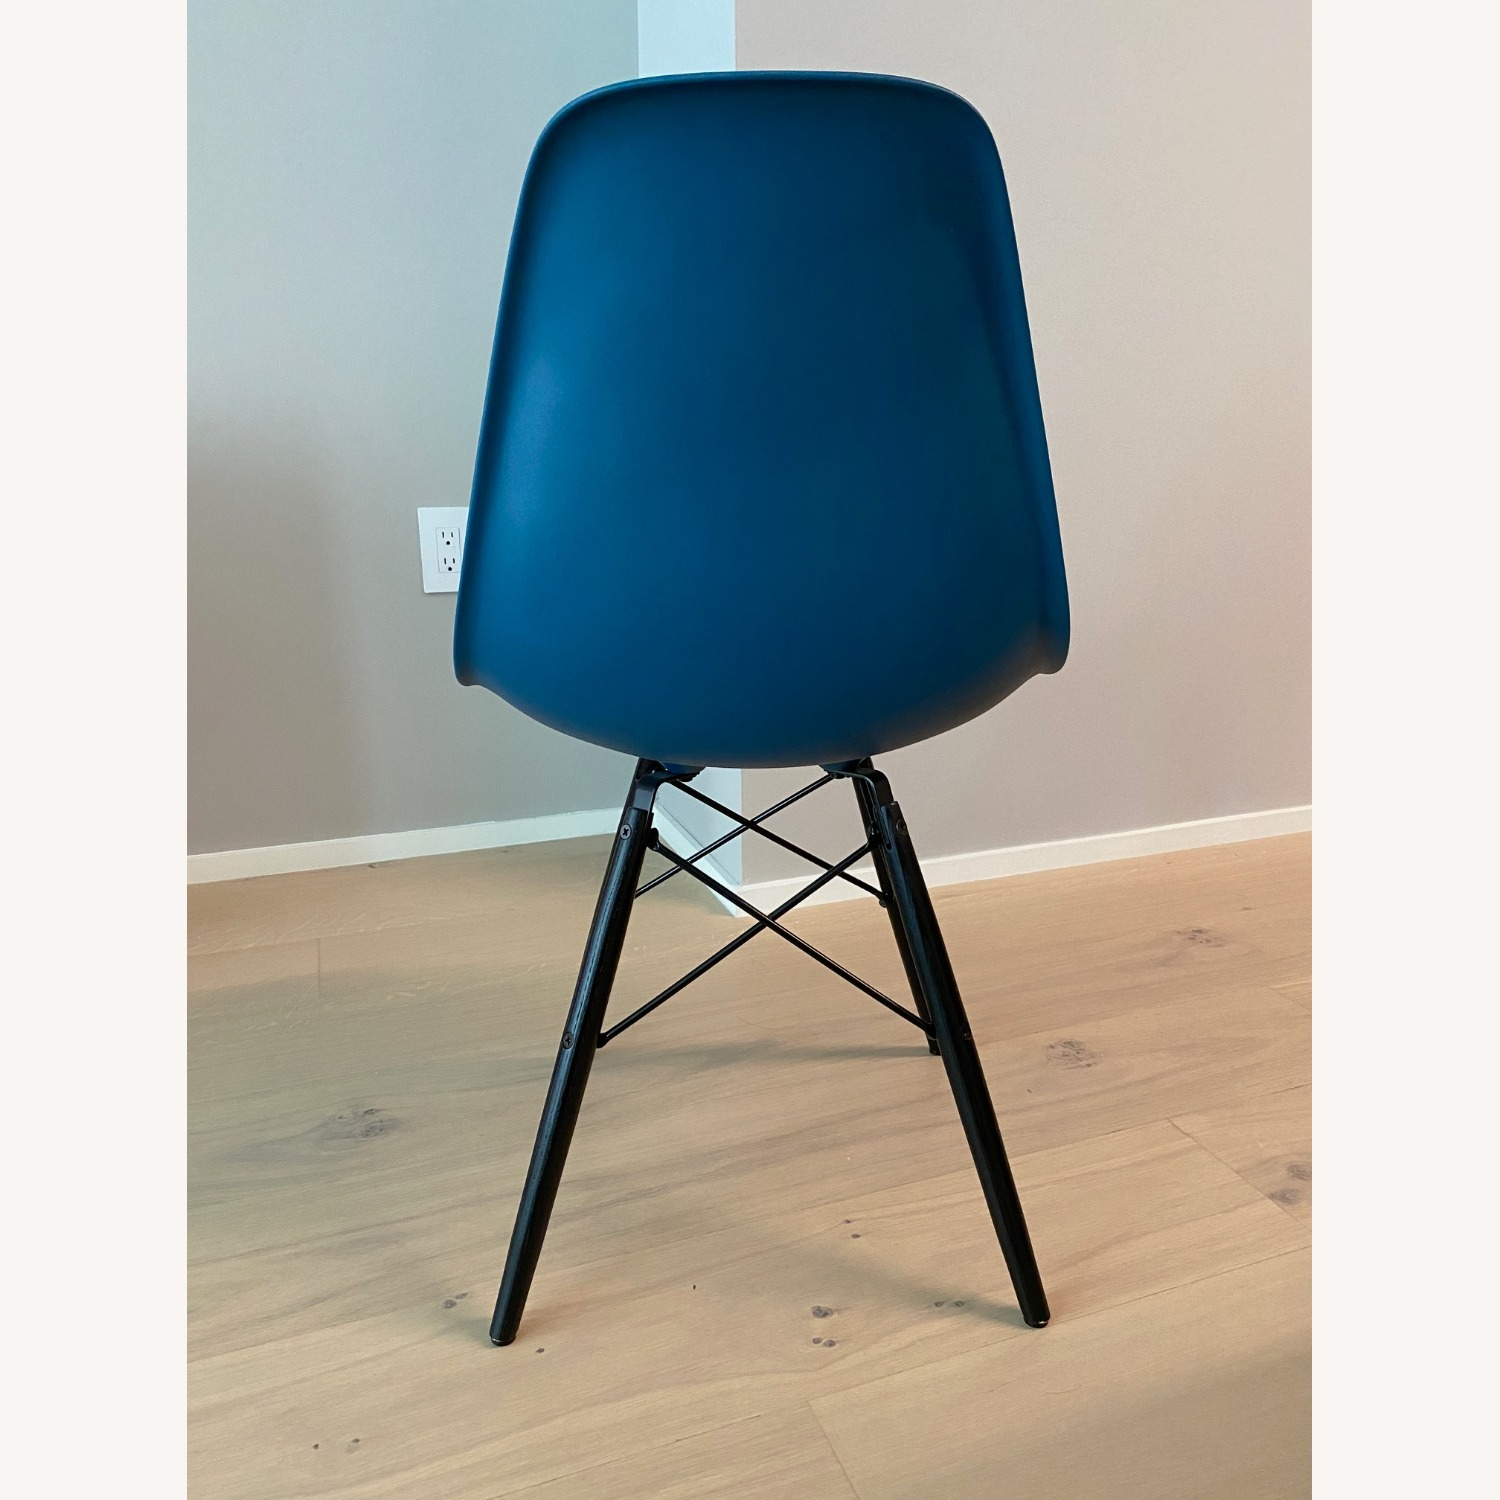 4 x Herman Miller Eames Molded Plastic Side Chair - image-2